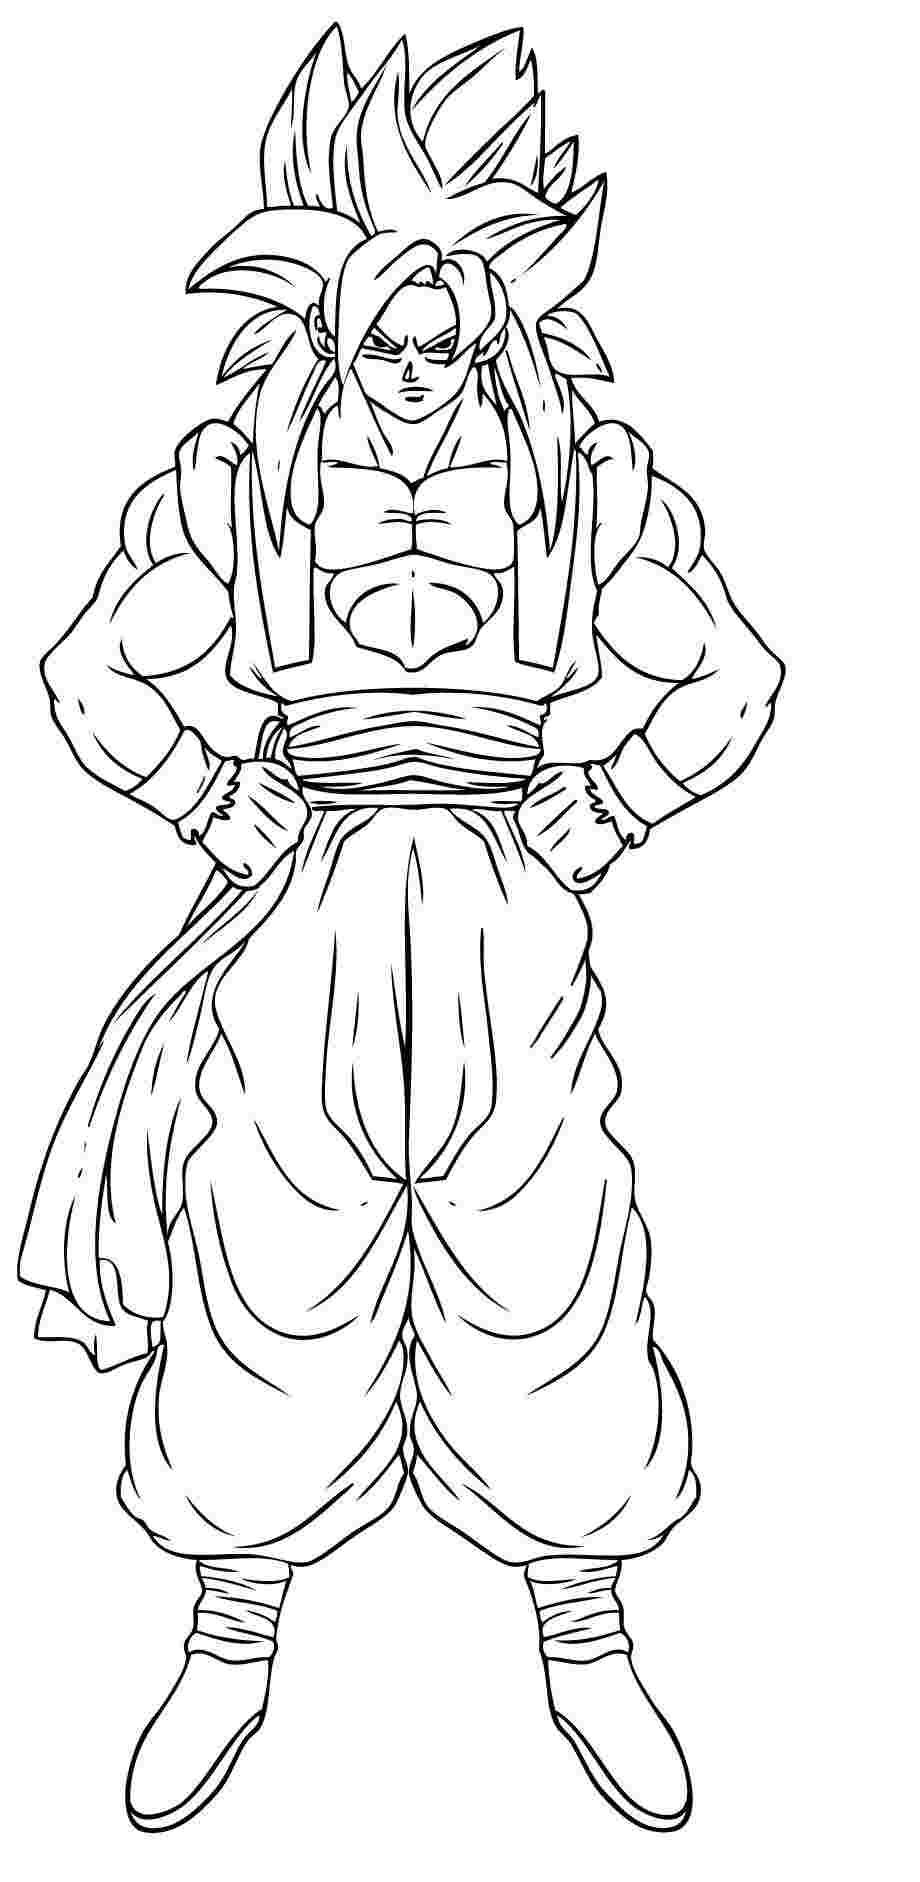 super saiyans coloring pages goku super saiyan 10 coloring pages coloring home super saiyans pages coloring